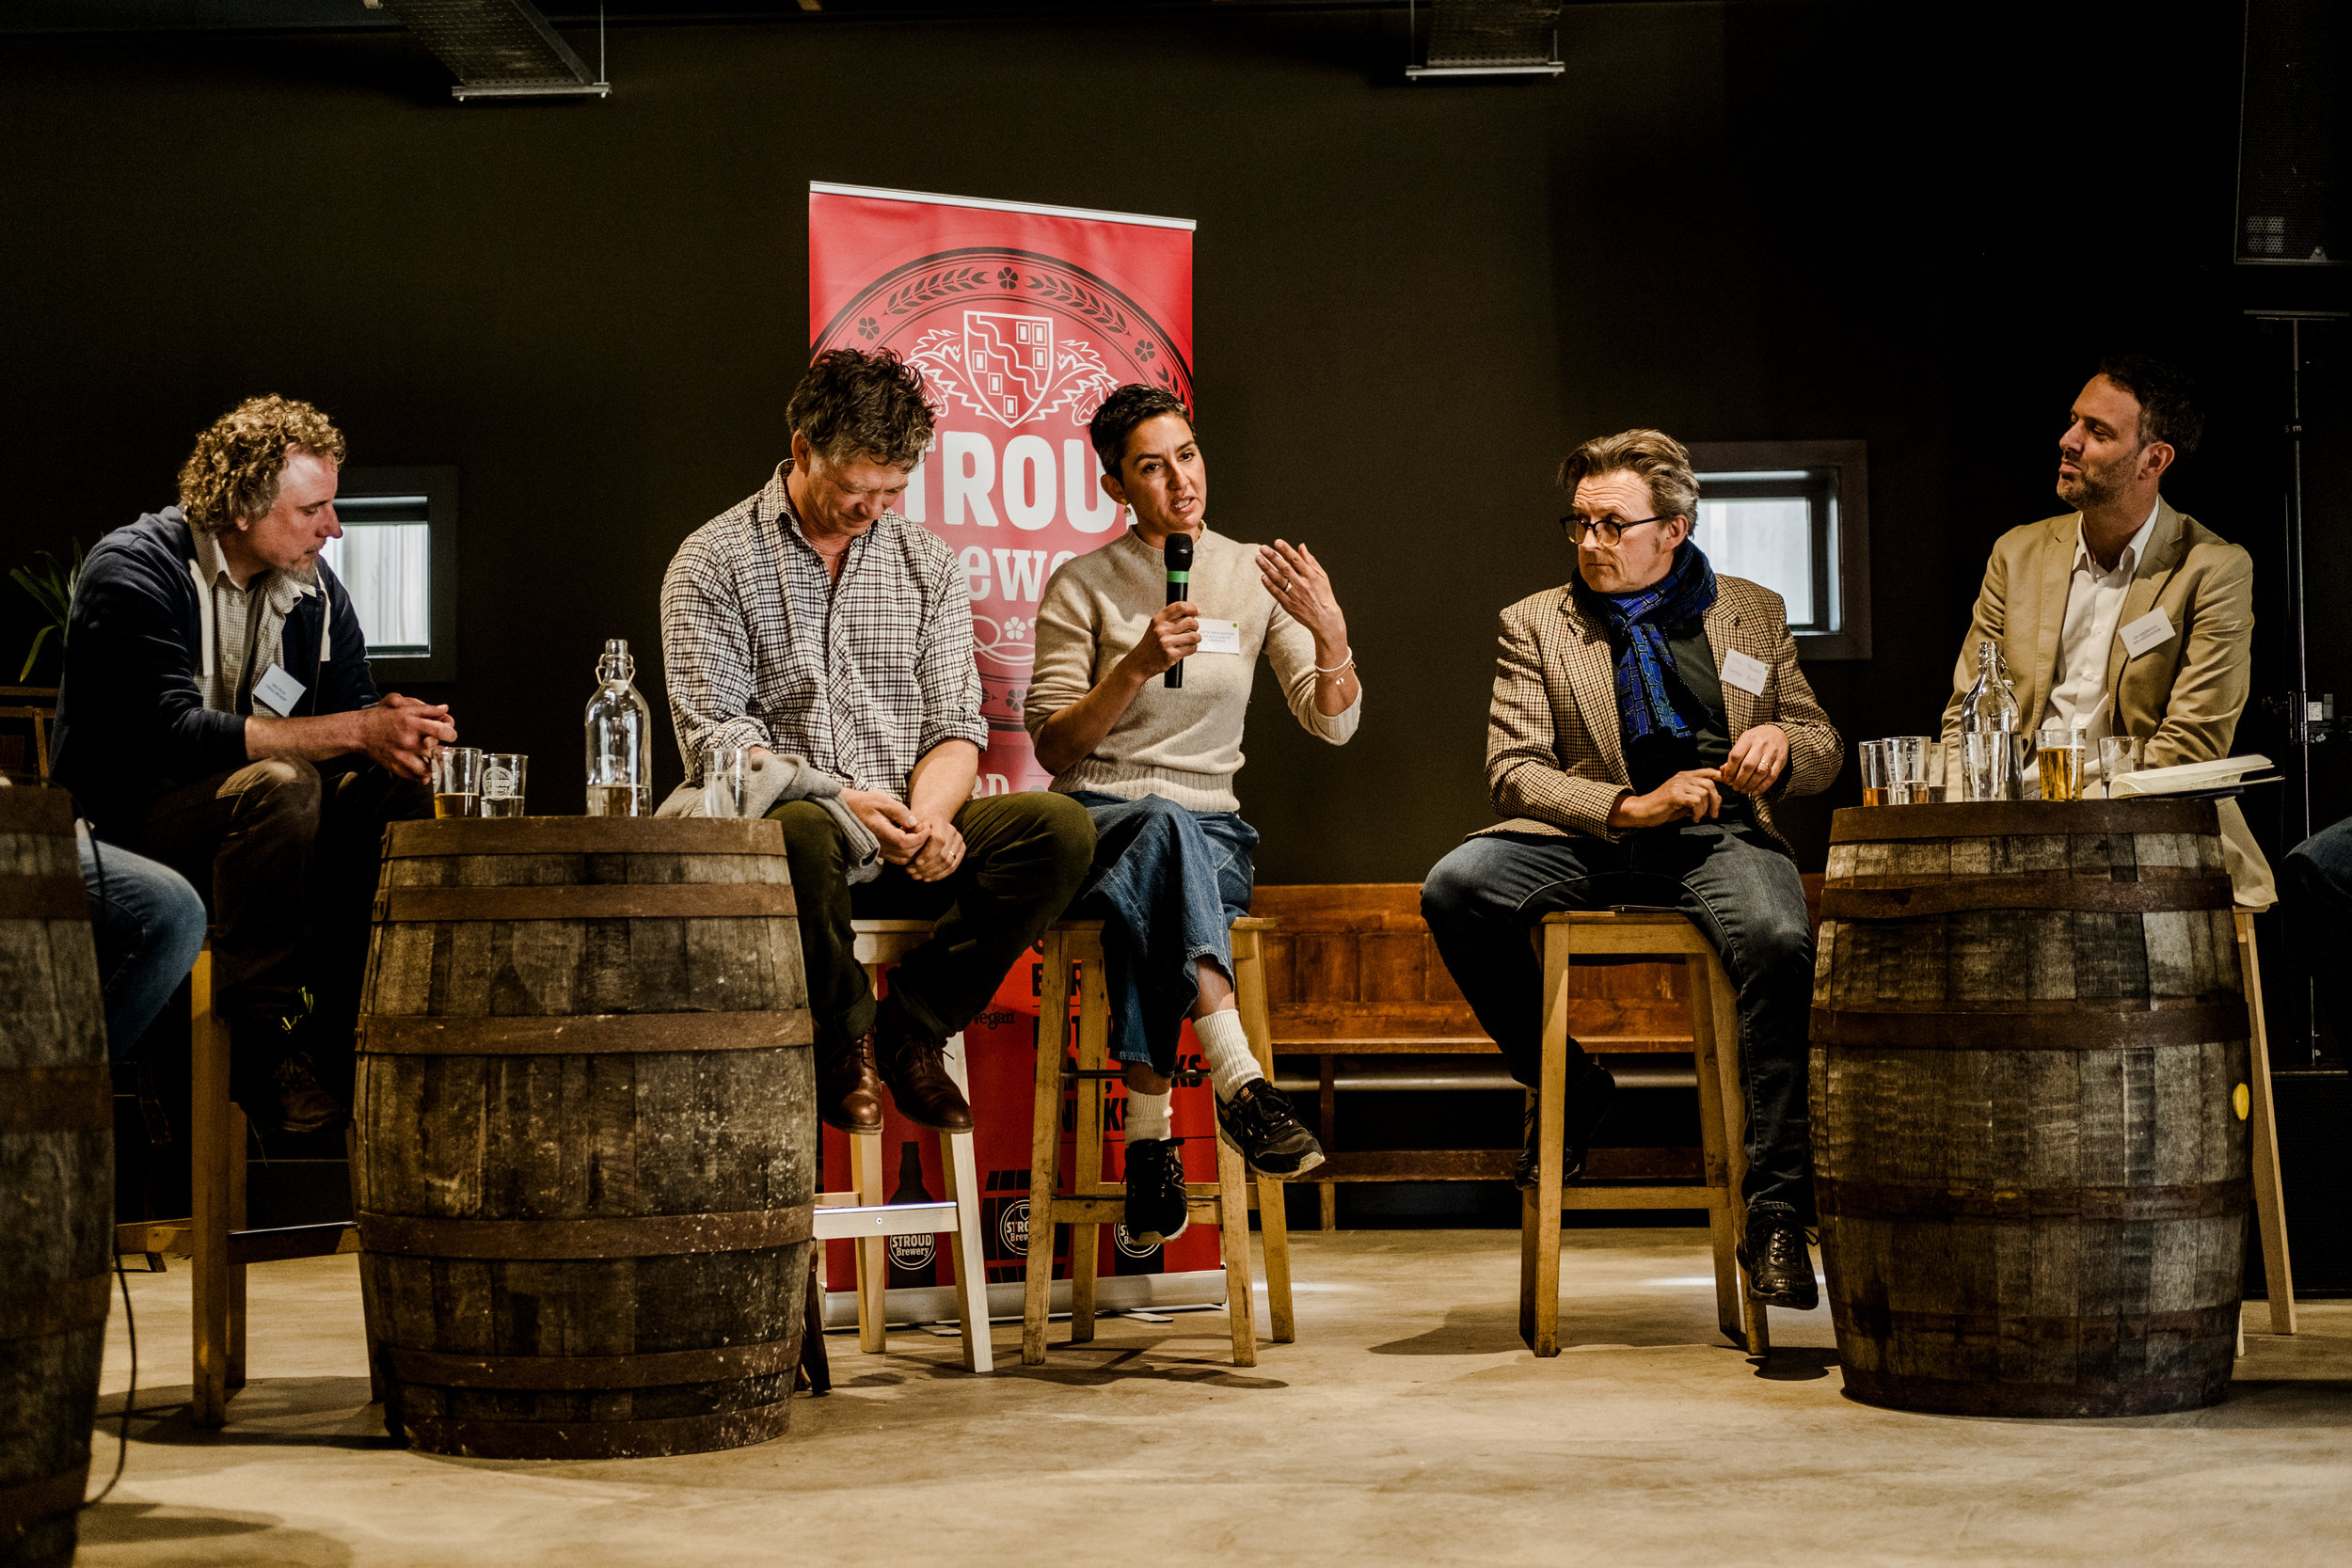 Stroud Brewery launch panel (Feb 2019) from Left to Right: Greg Pilley: Stroud Brewery, Guy Singh-Watson: Riverford Organic, Geetie Singh-Watson: Duke of Cambridge organic pub,  Neil Palmer: Vintage Roots, Lee Holdstock: Soil Association